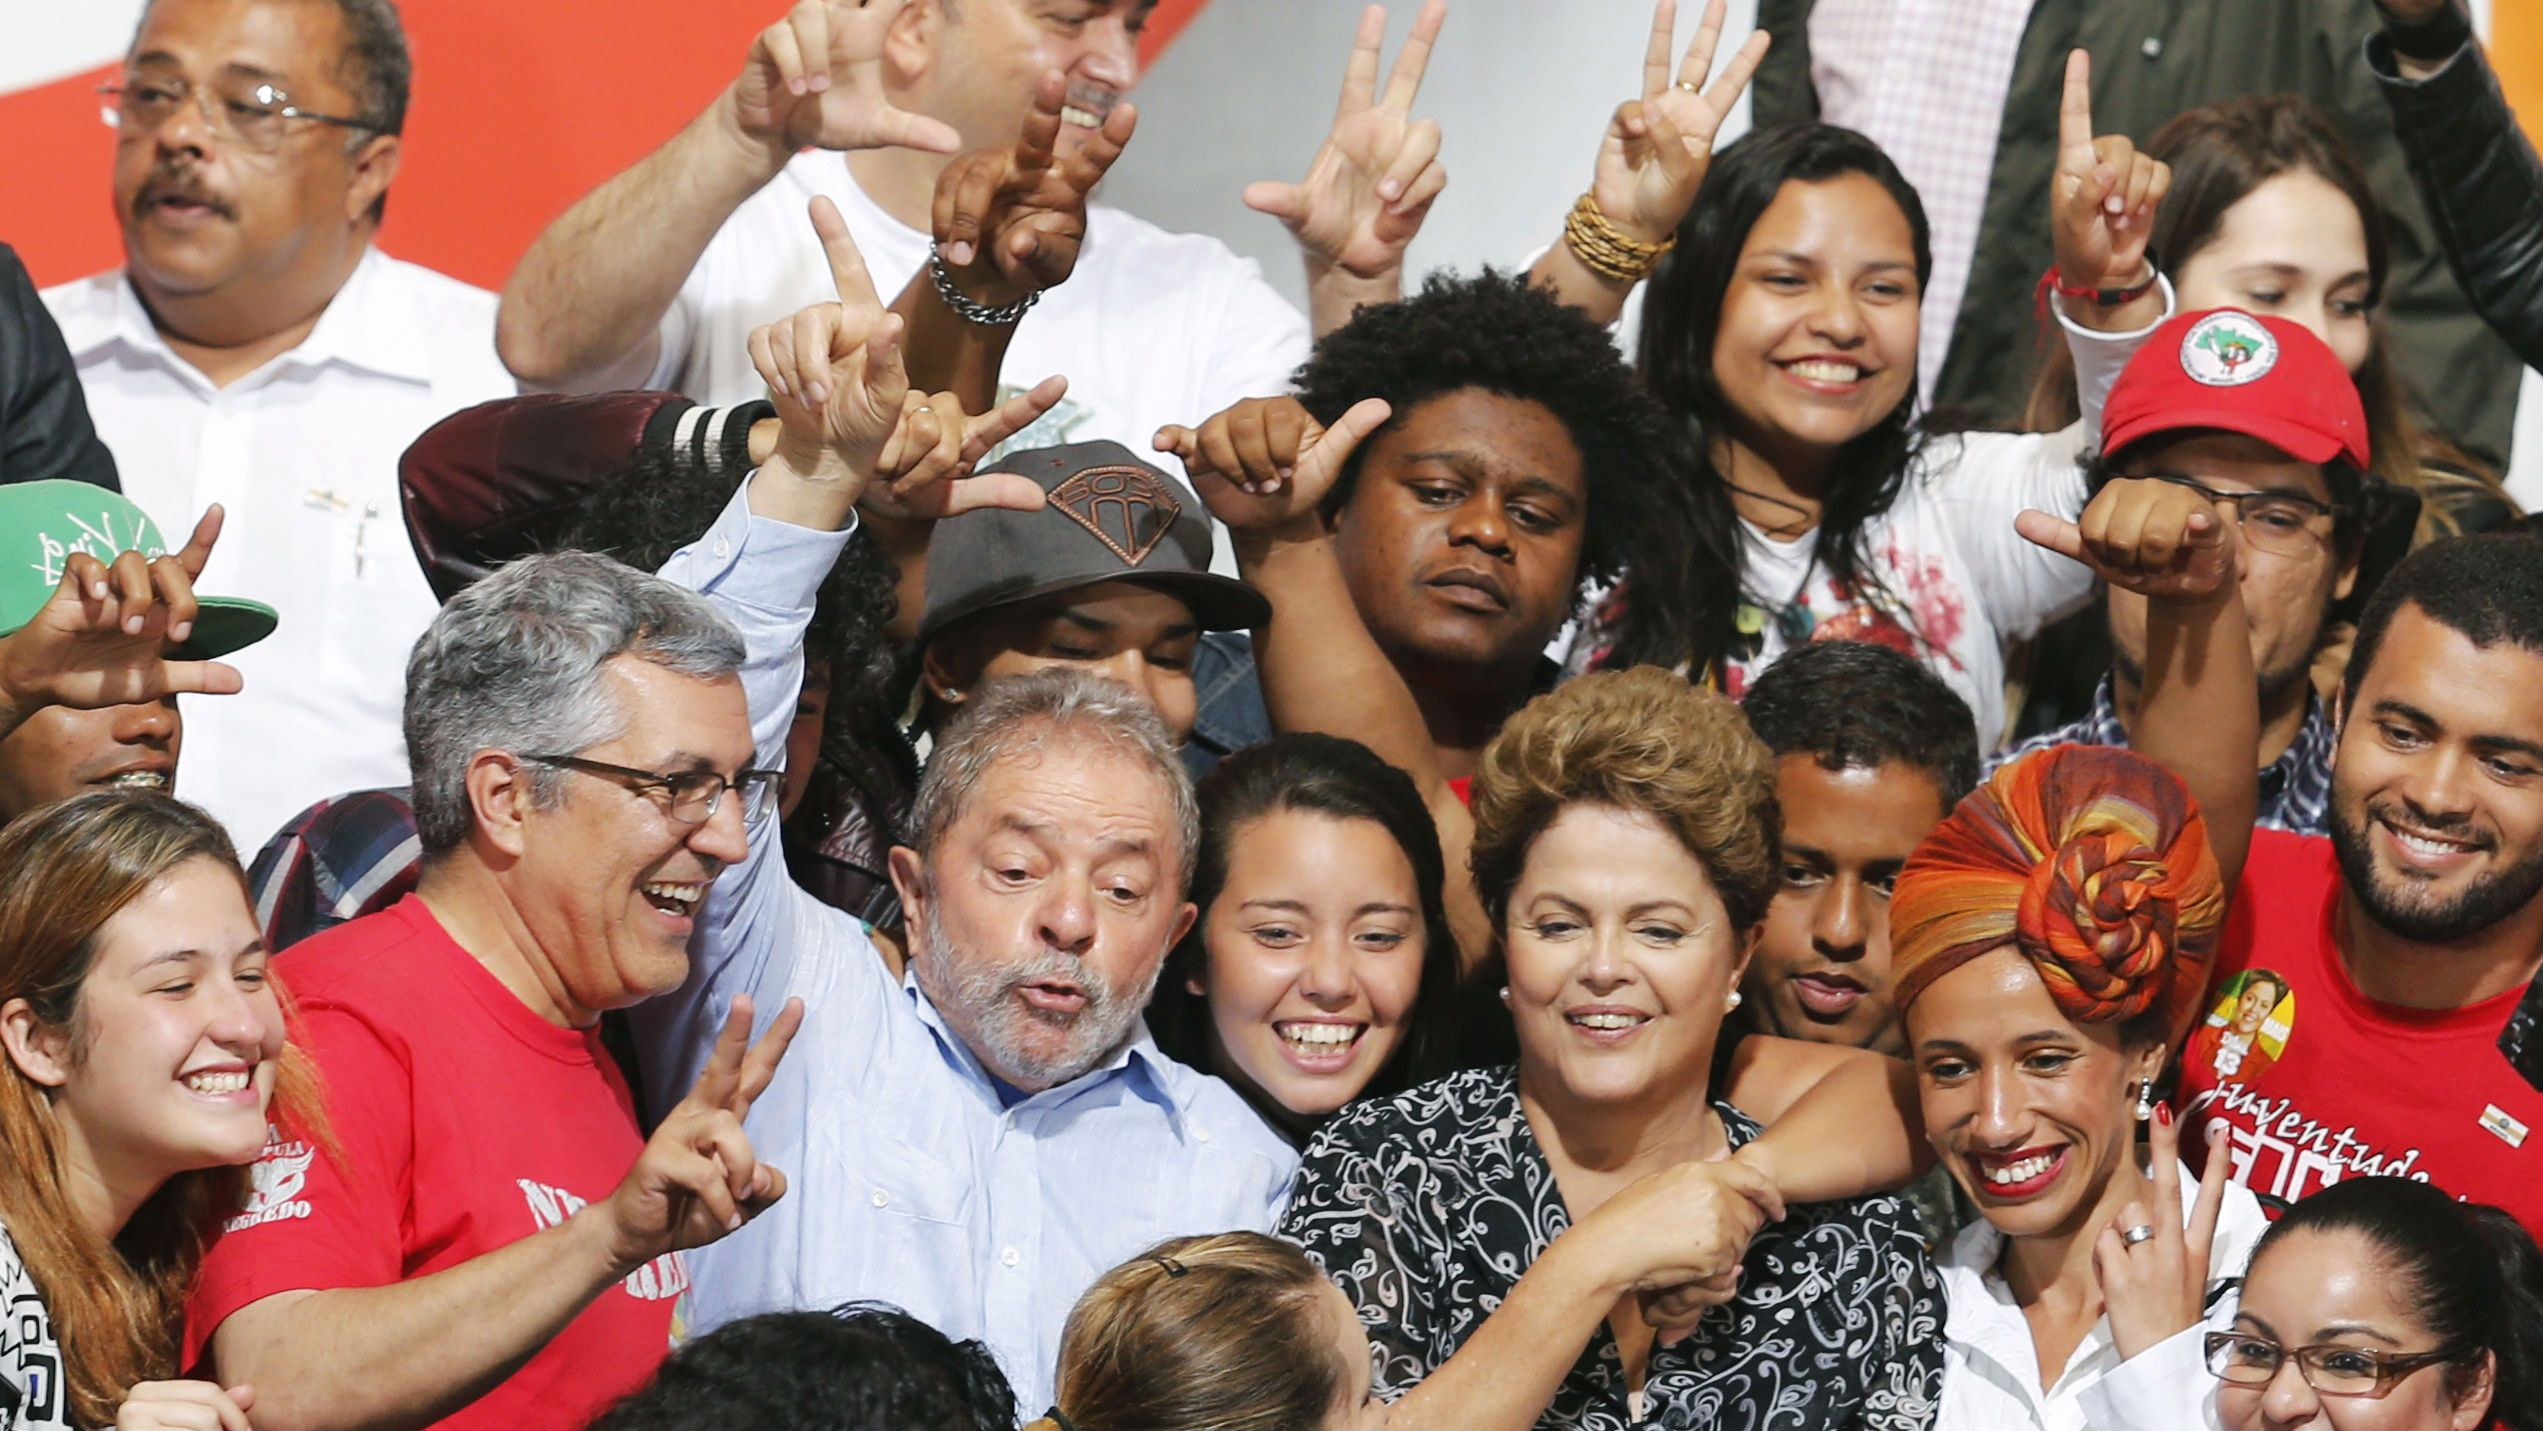 Brazil's President and Workers' Party (PT) presidential candidate Dilma Rousseff (front 3rd R) and Brazil's former President Luiz Inacio Lula da Silva (front 3rd L) pose for picture with supporters during a campaign rally in Sao Paulo October 20, 2014. President Dilma Rousseff is gaining momentum but remains locked in a dead heat with challenger Aecio Neves ahead of Sunday's runoff to Brazil's presidential election, a survey by pollster MDA showed on Monday. REUTERS/Paulo Whitaker (BRAZIL - Tags: POLITICS ELECTIONS)